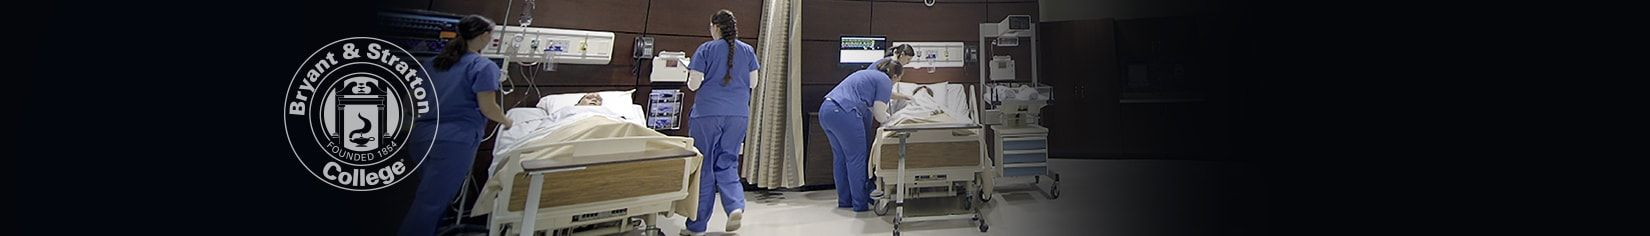 Nursing students evaluating patients